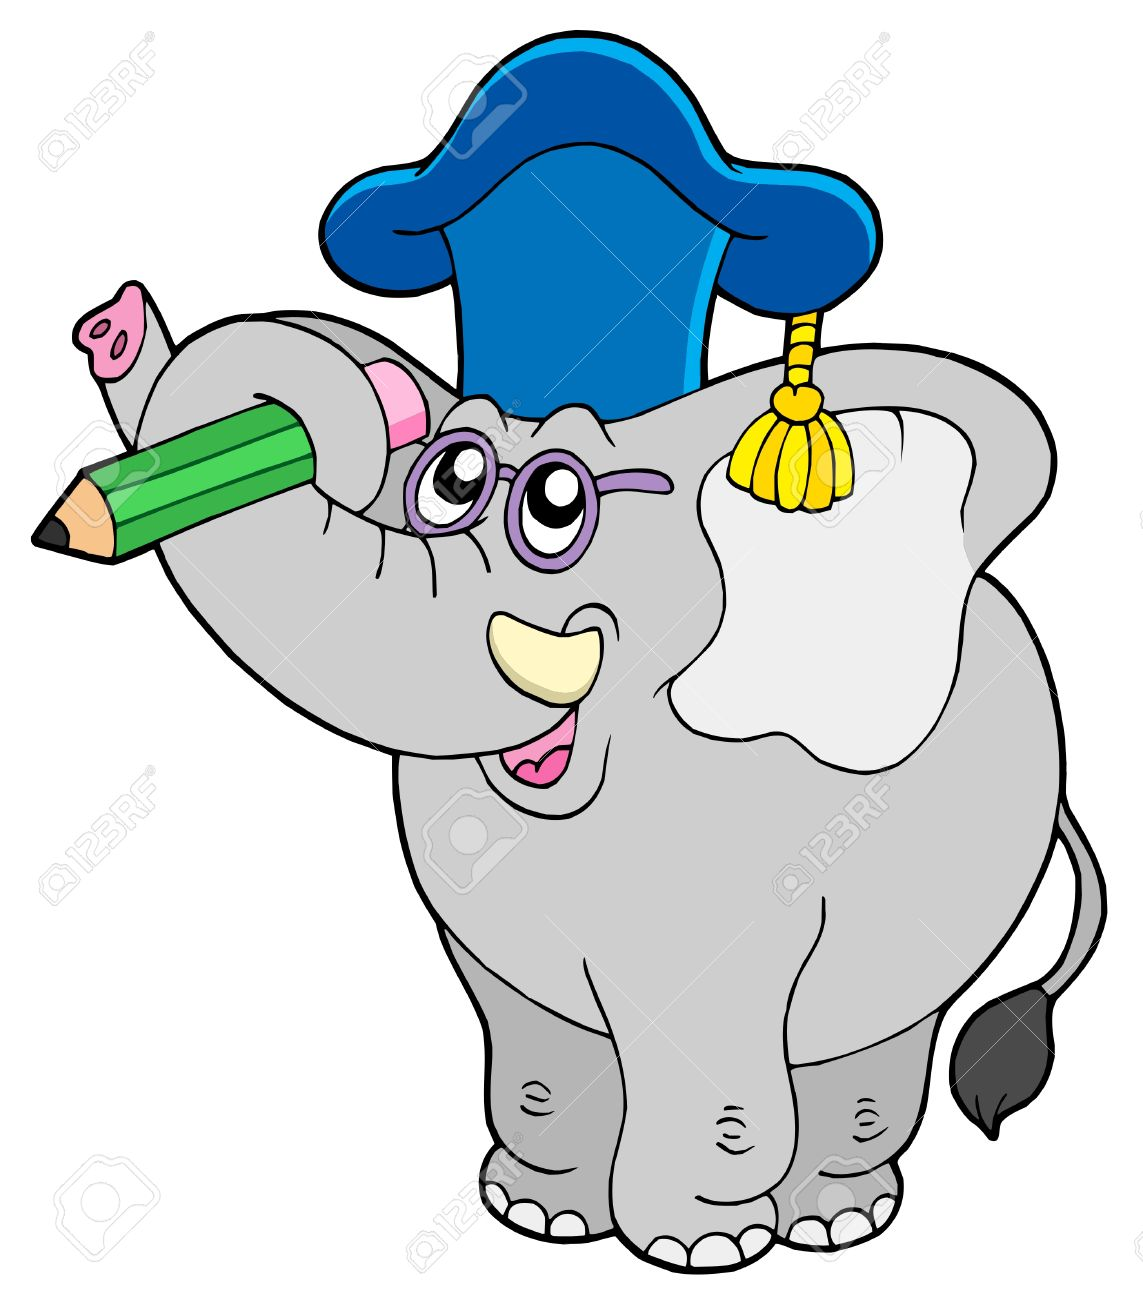 4141963-Writing-elephant-teacher-vector-